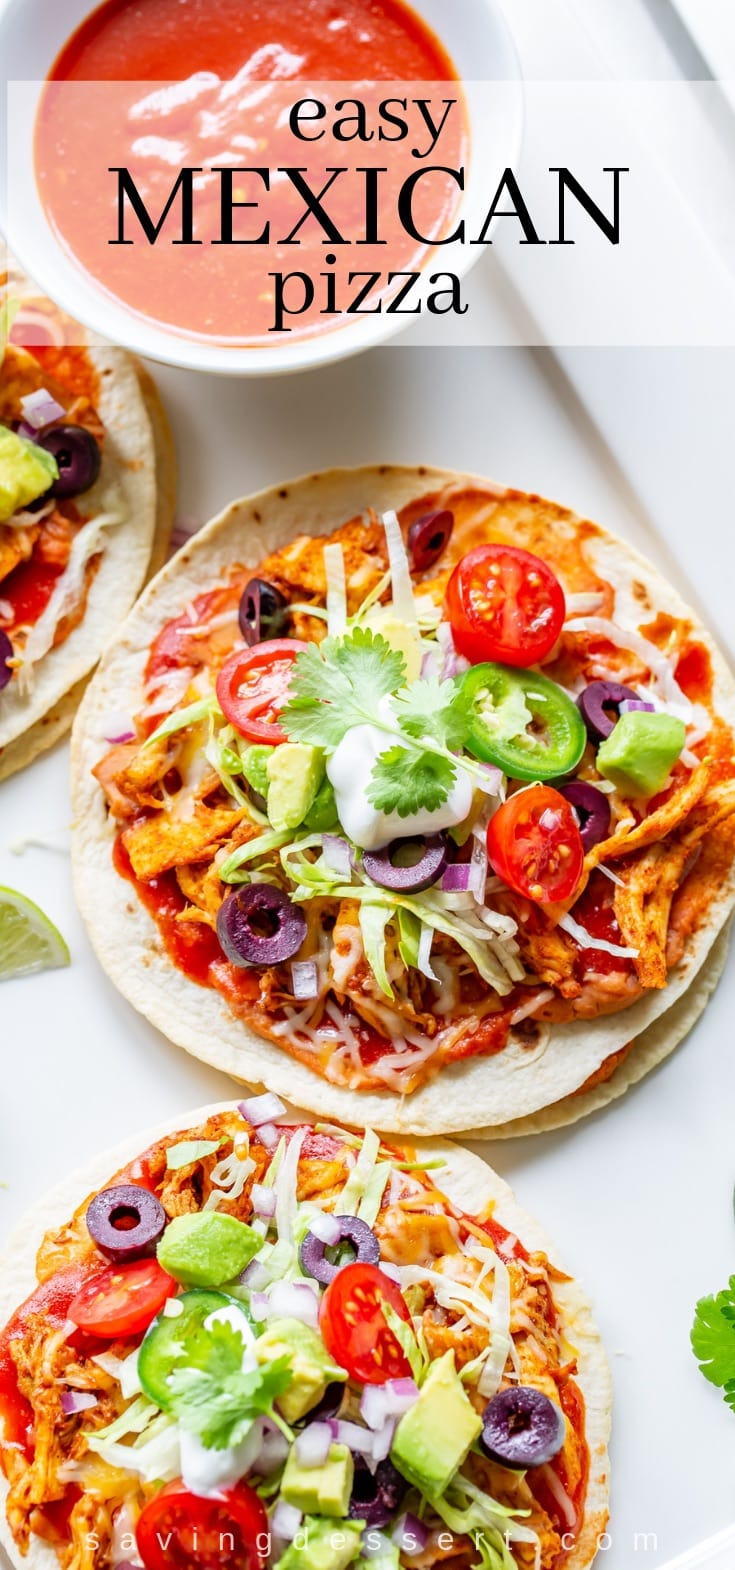 Try our Easy Mexican Pizza layered with refried beans, spicy chicken, onions, shredded cheese and plenty of taco sauce then top with your favorite add-ons! #mexicanpizza #tacopizza #easytacopizze #medican #cincodemayo #tacobellcopycat